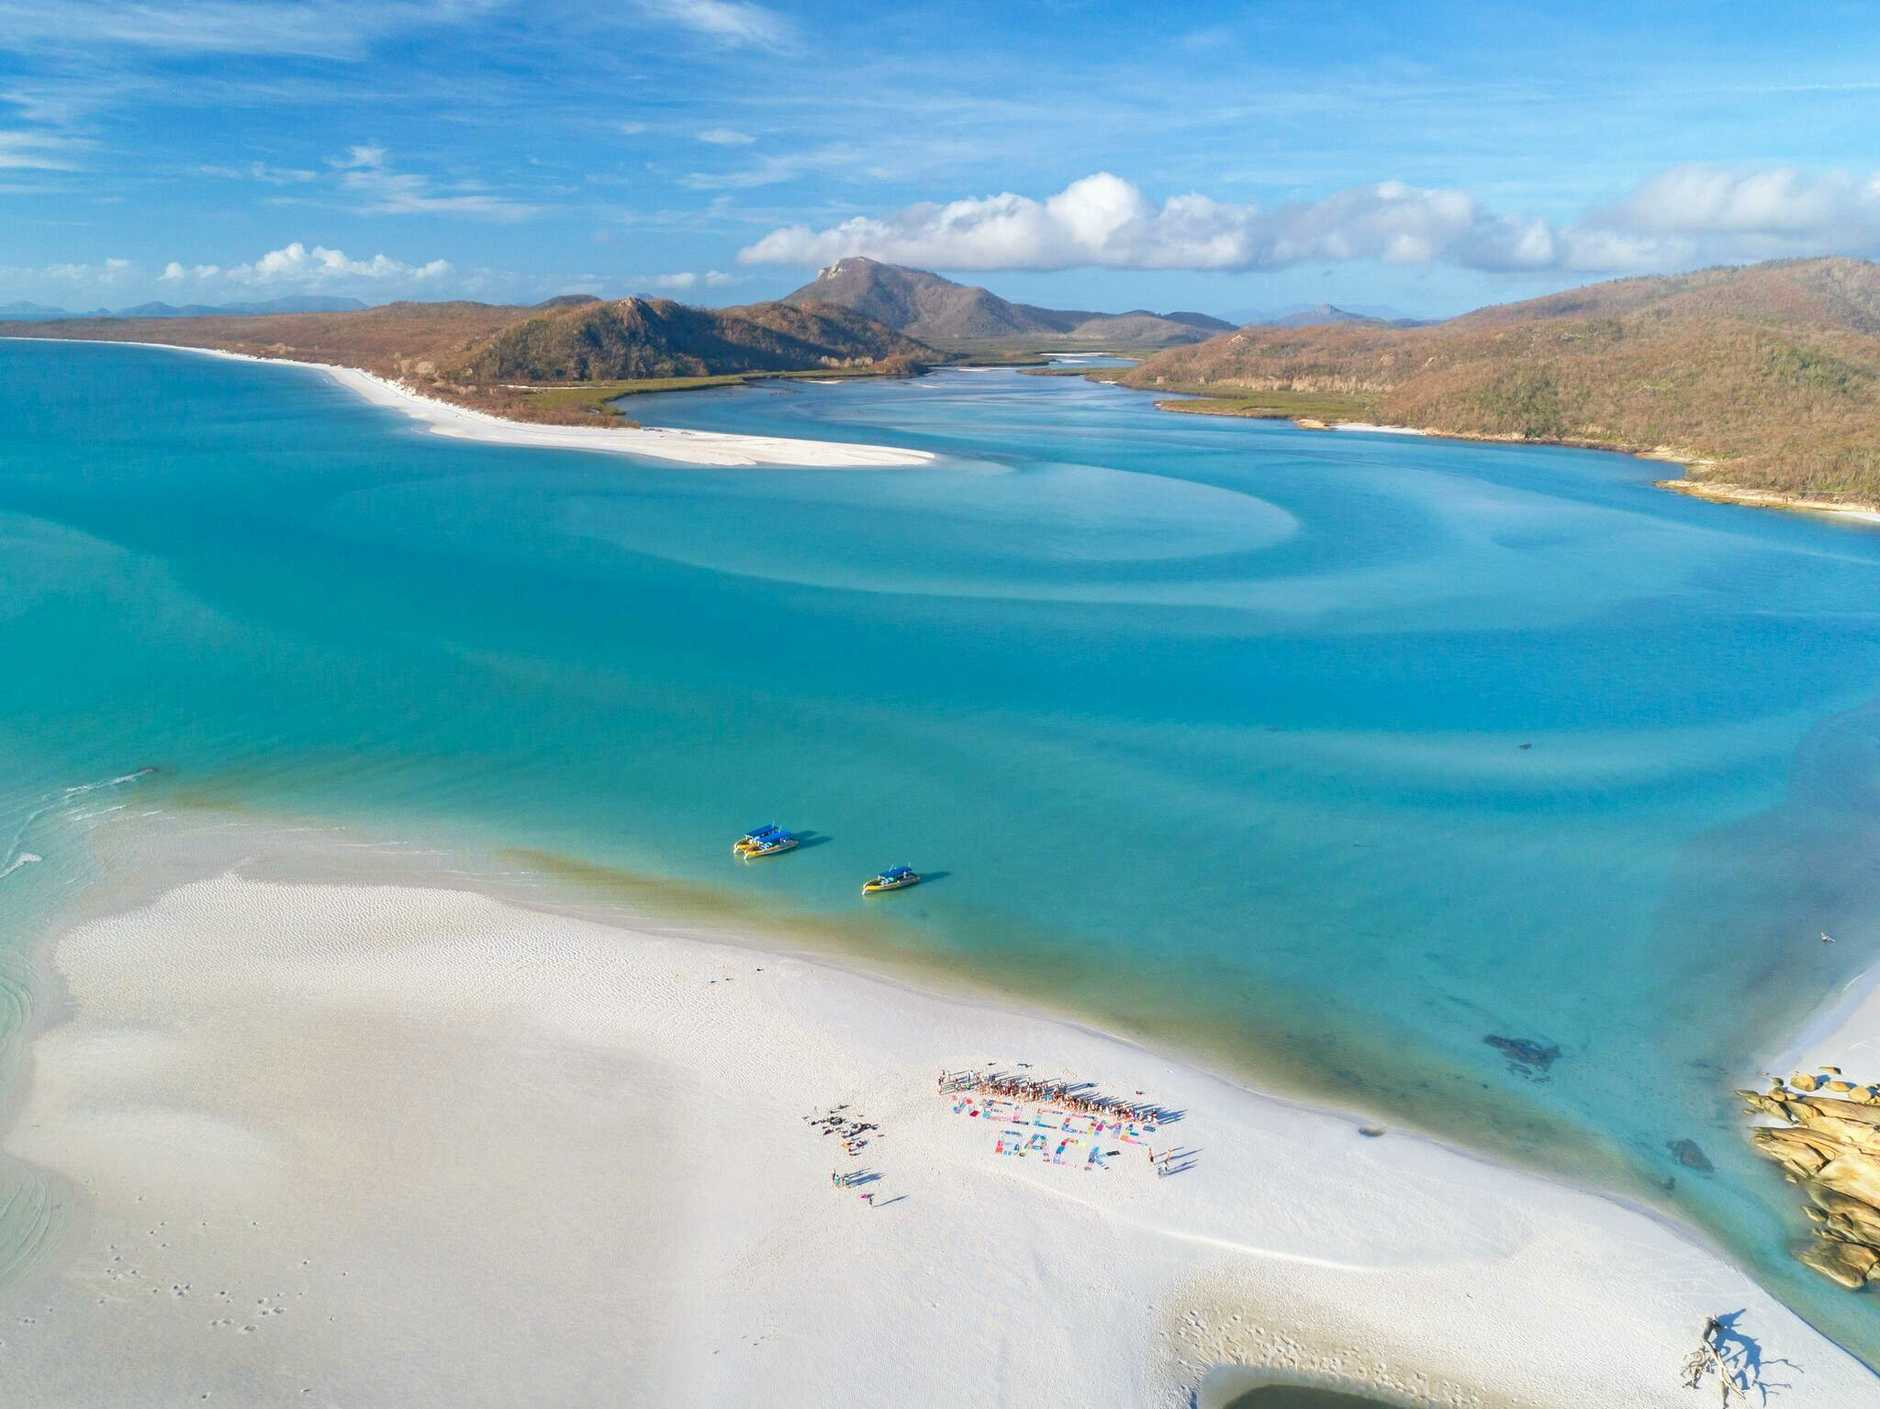 A bird's eye view of Hill Inlet and Whitehaven Beach.